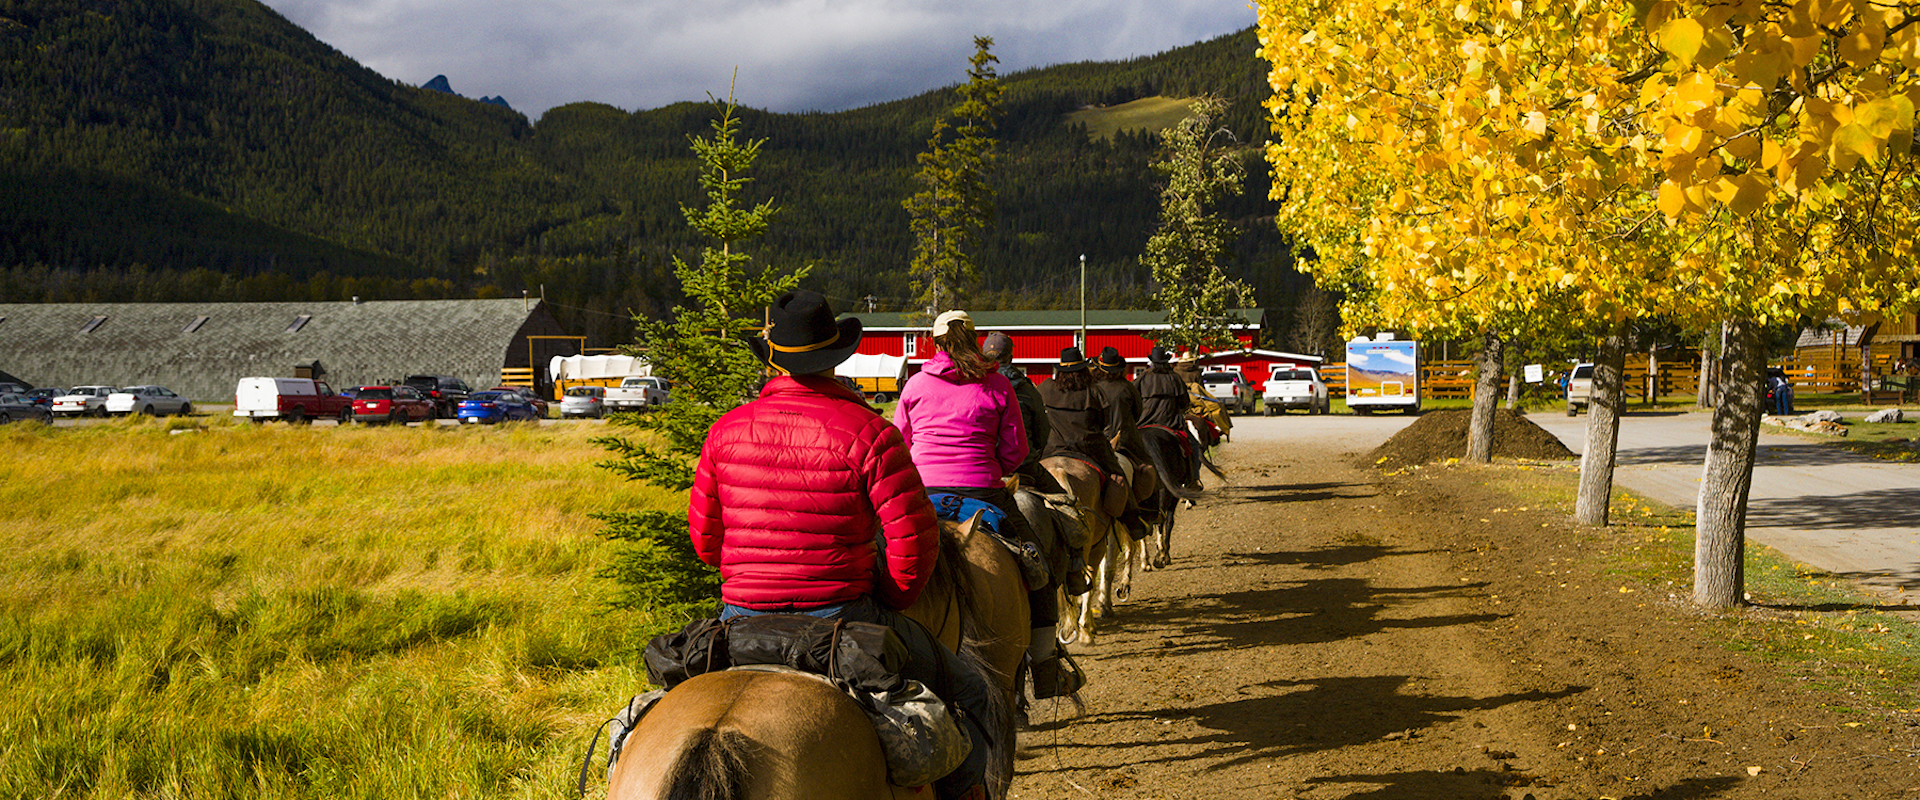 Returning Home to Warner Stables from the Sundance Overnight Backcountry Trip in Banff, Canadian Rockies with Banff Trail Riders